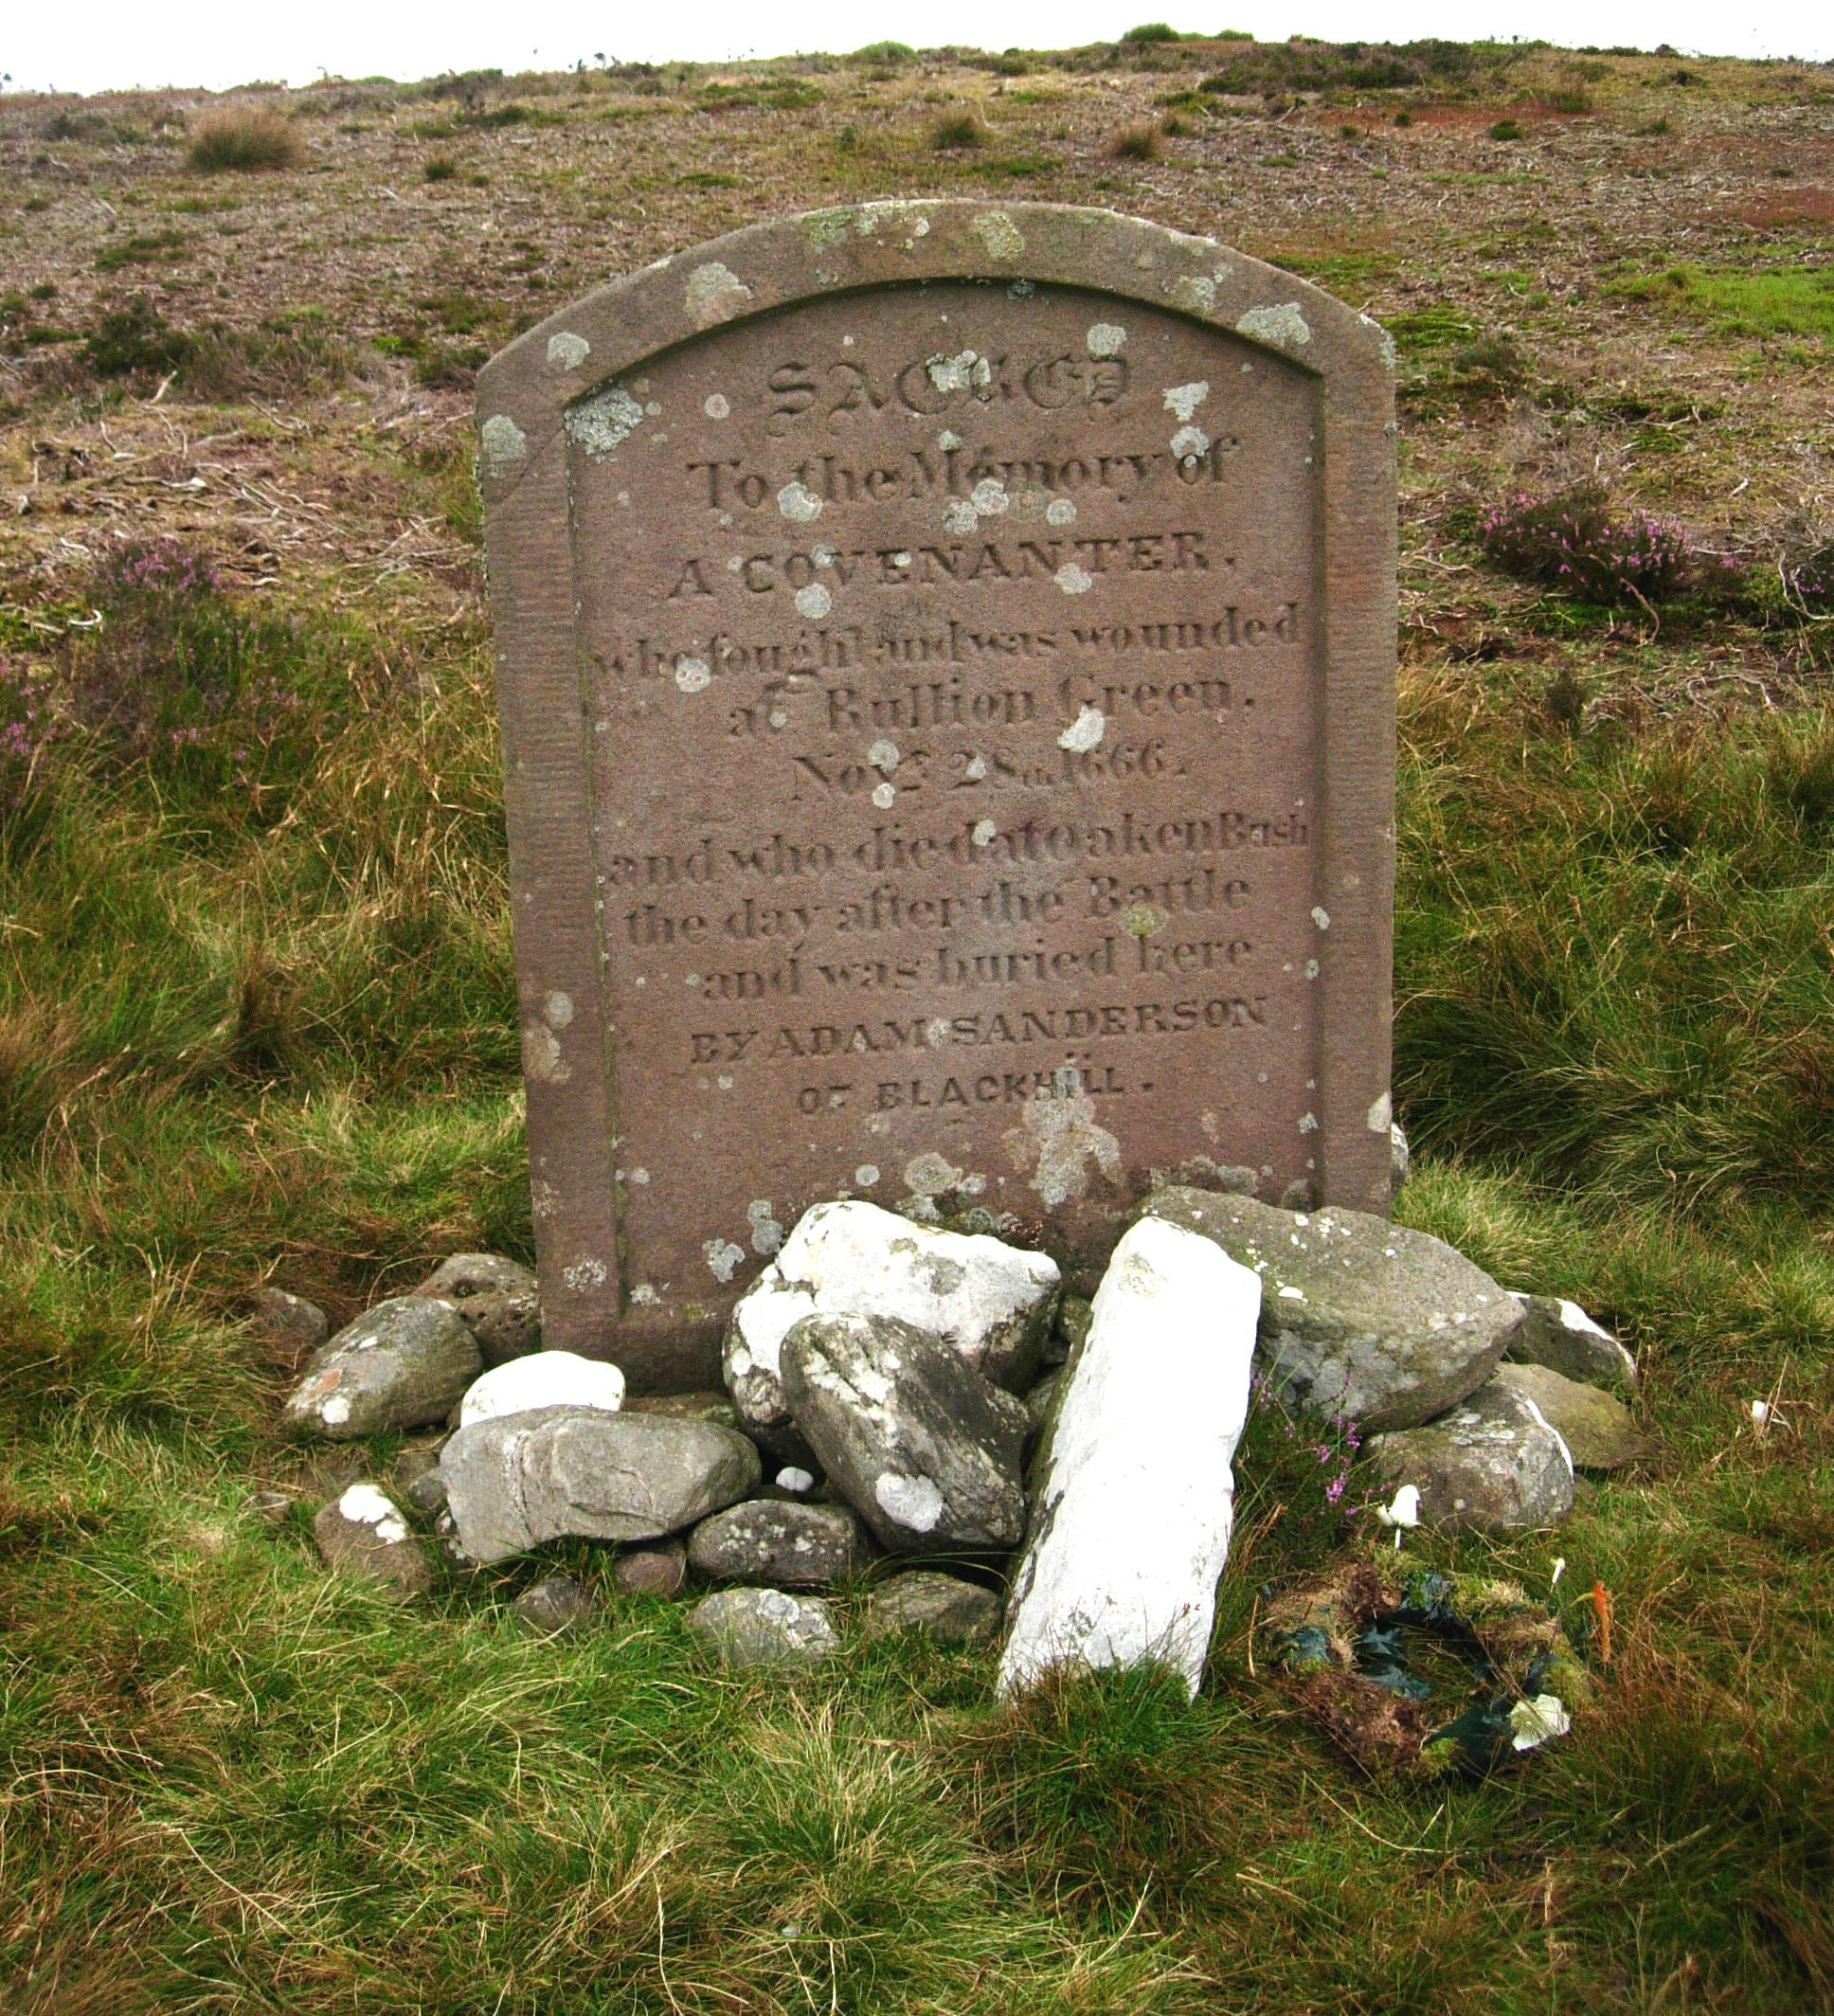 Covenanter�s Grave